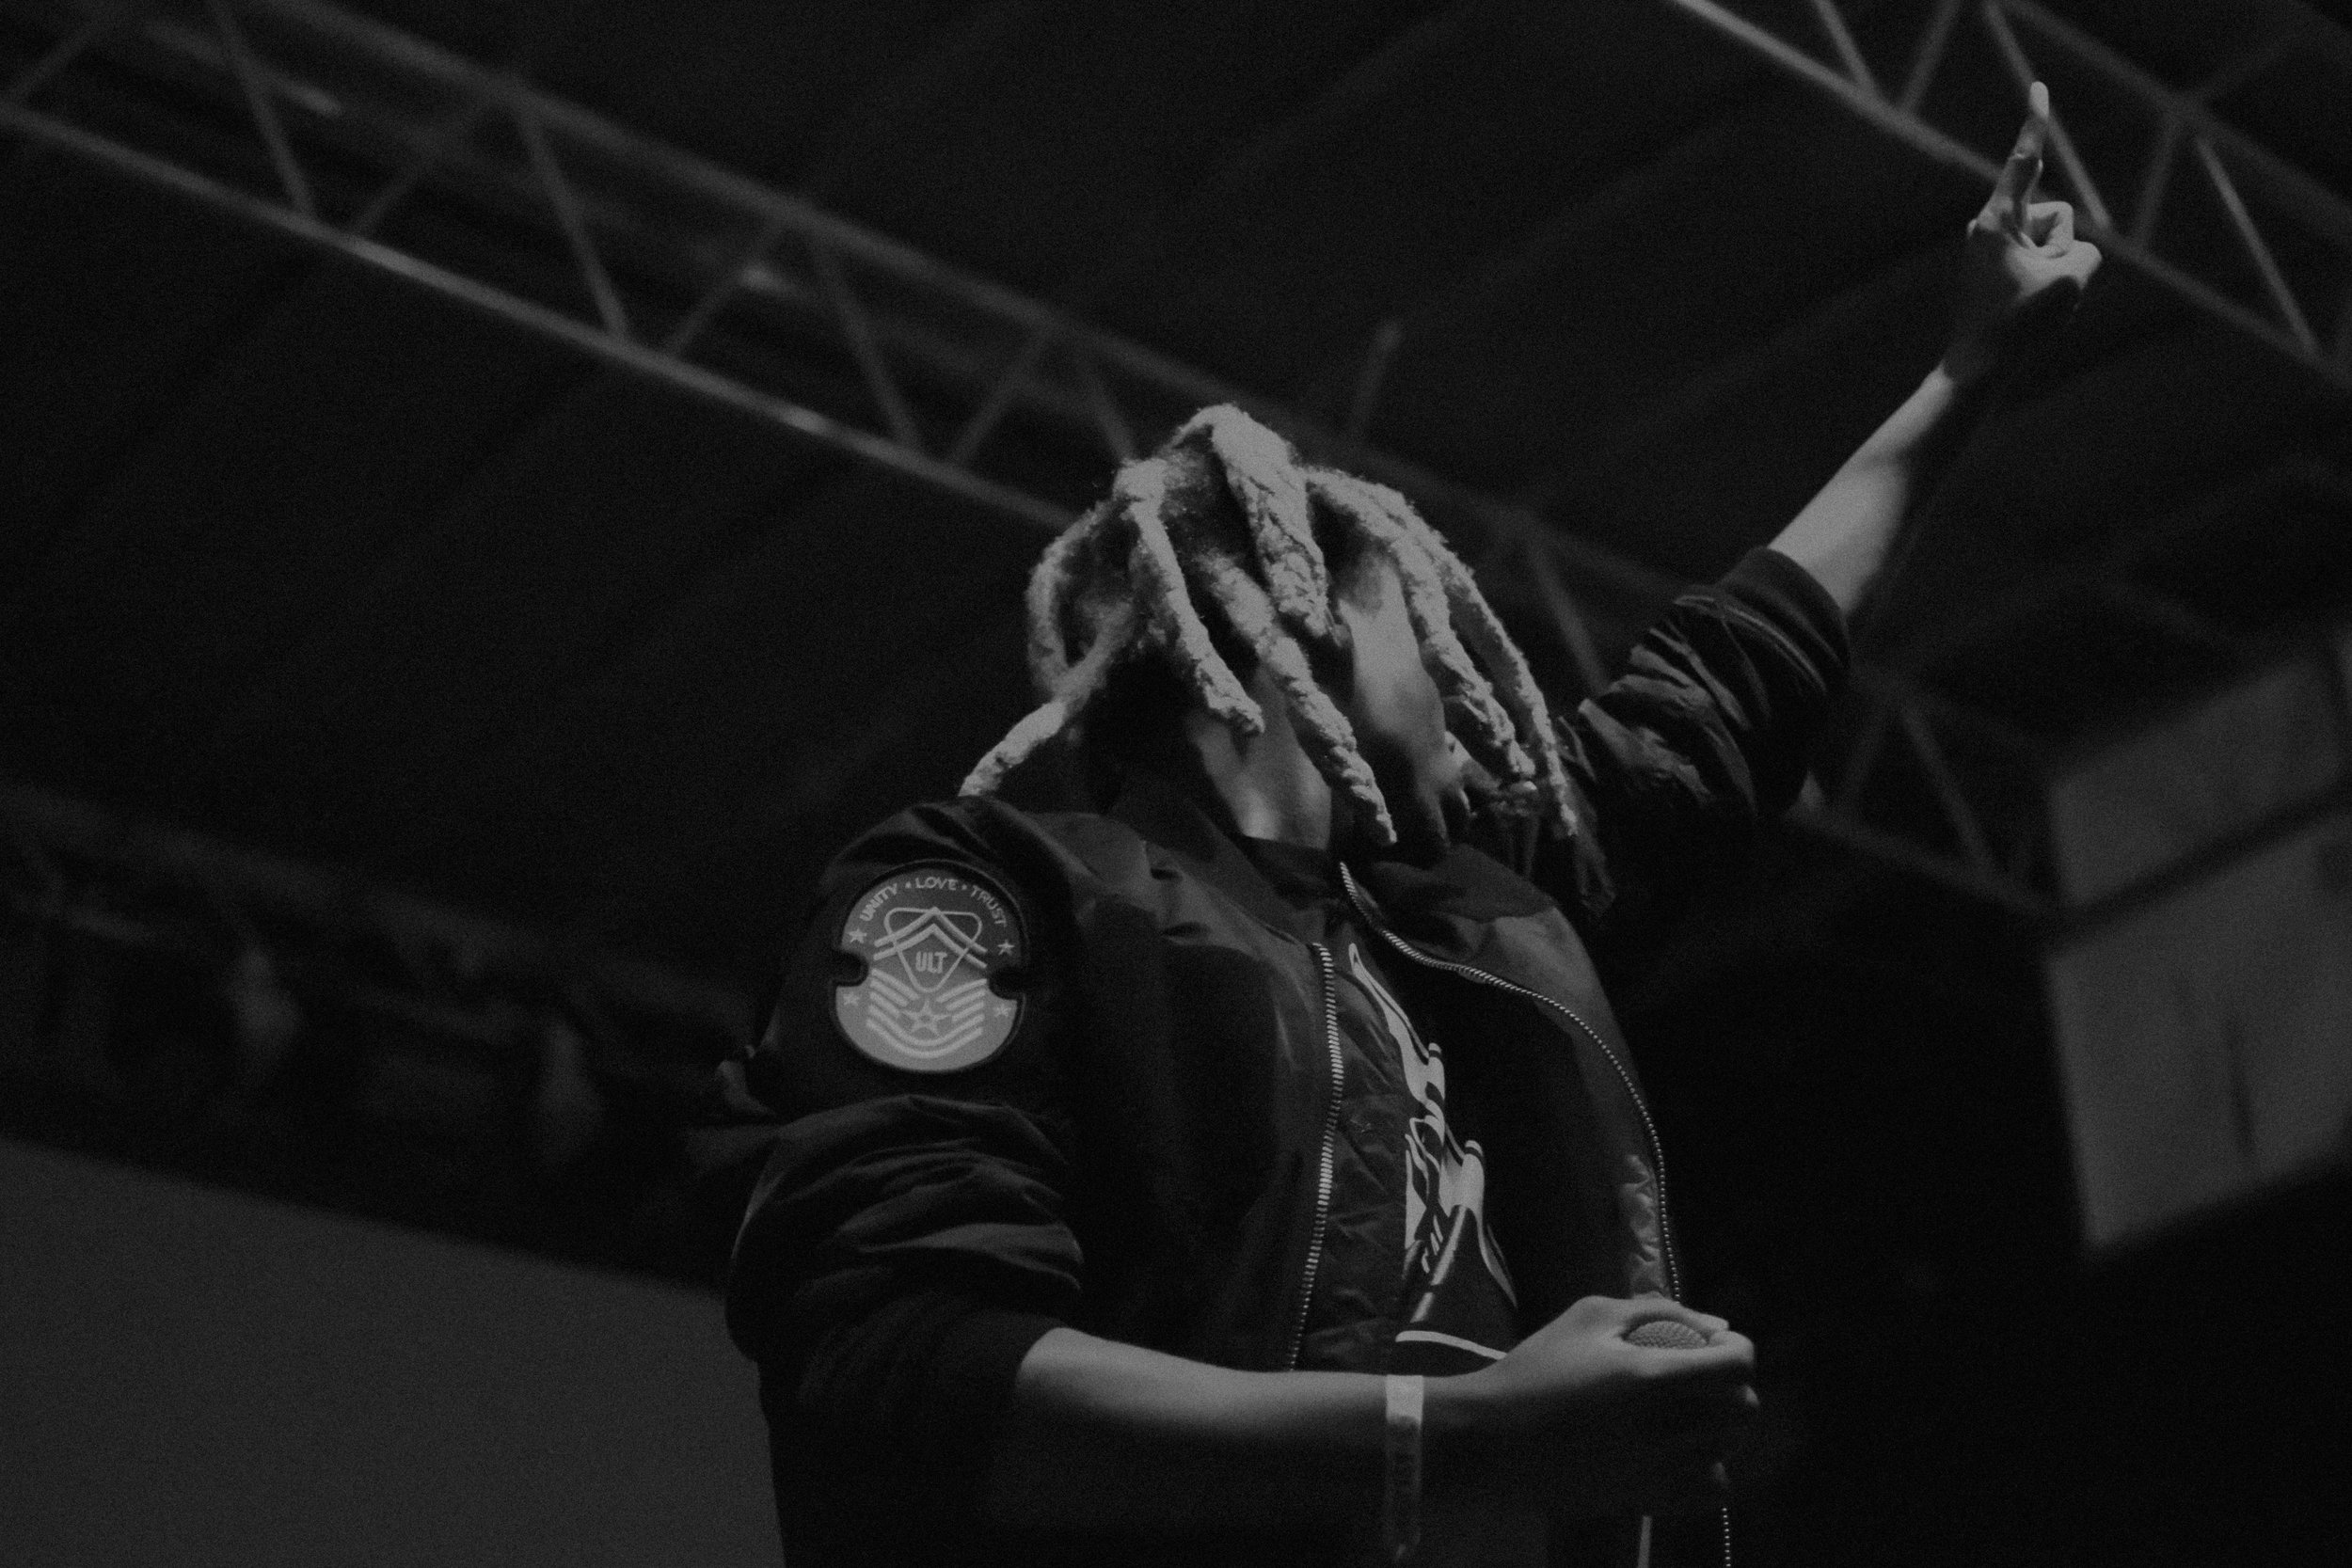 Denzel Curry wears a bomber jacket while performing on stage at Sound on Sound Fest in McDade, Texas.